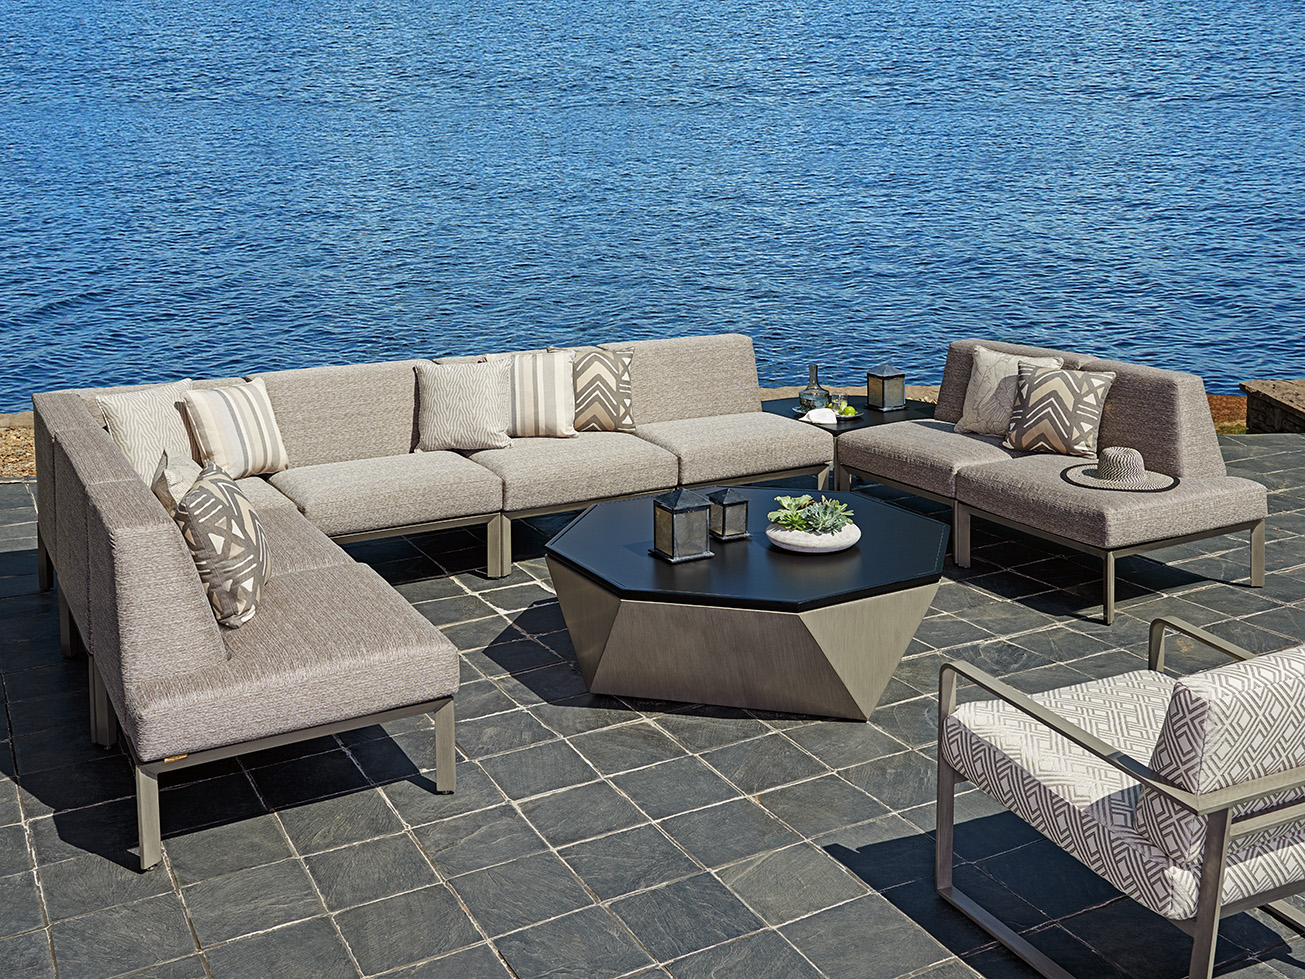 About the Outdoor Gallery. The Outdoor Gallery at Furnitureland South ... - Furnitureland South World's Largest Furniture Store Discount